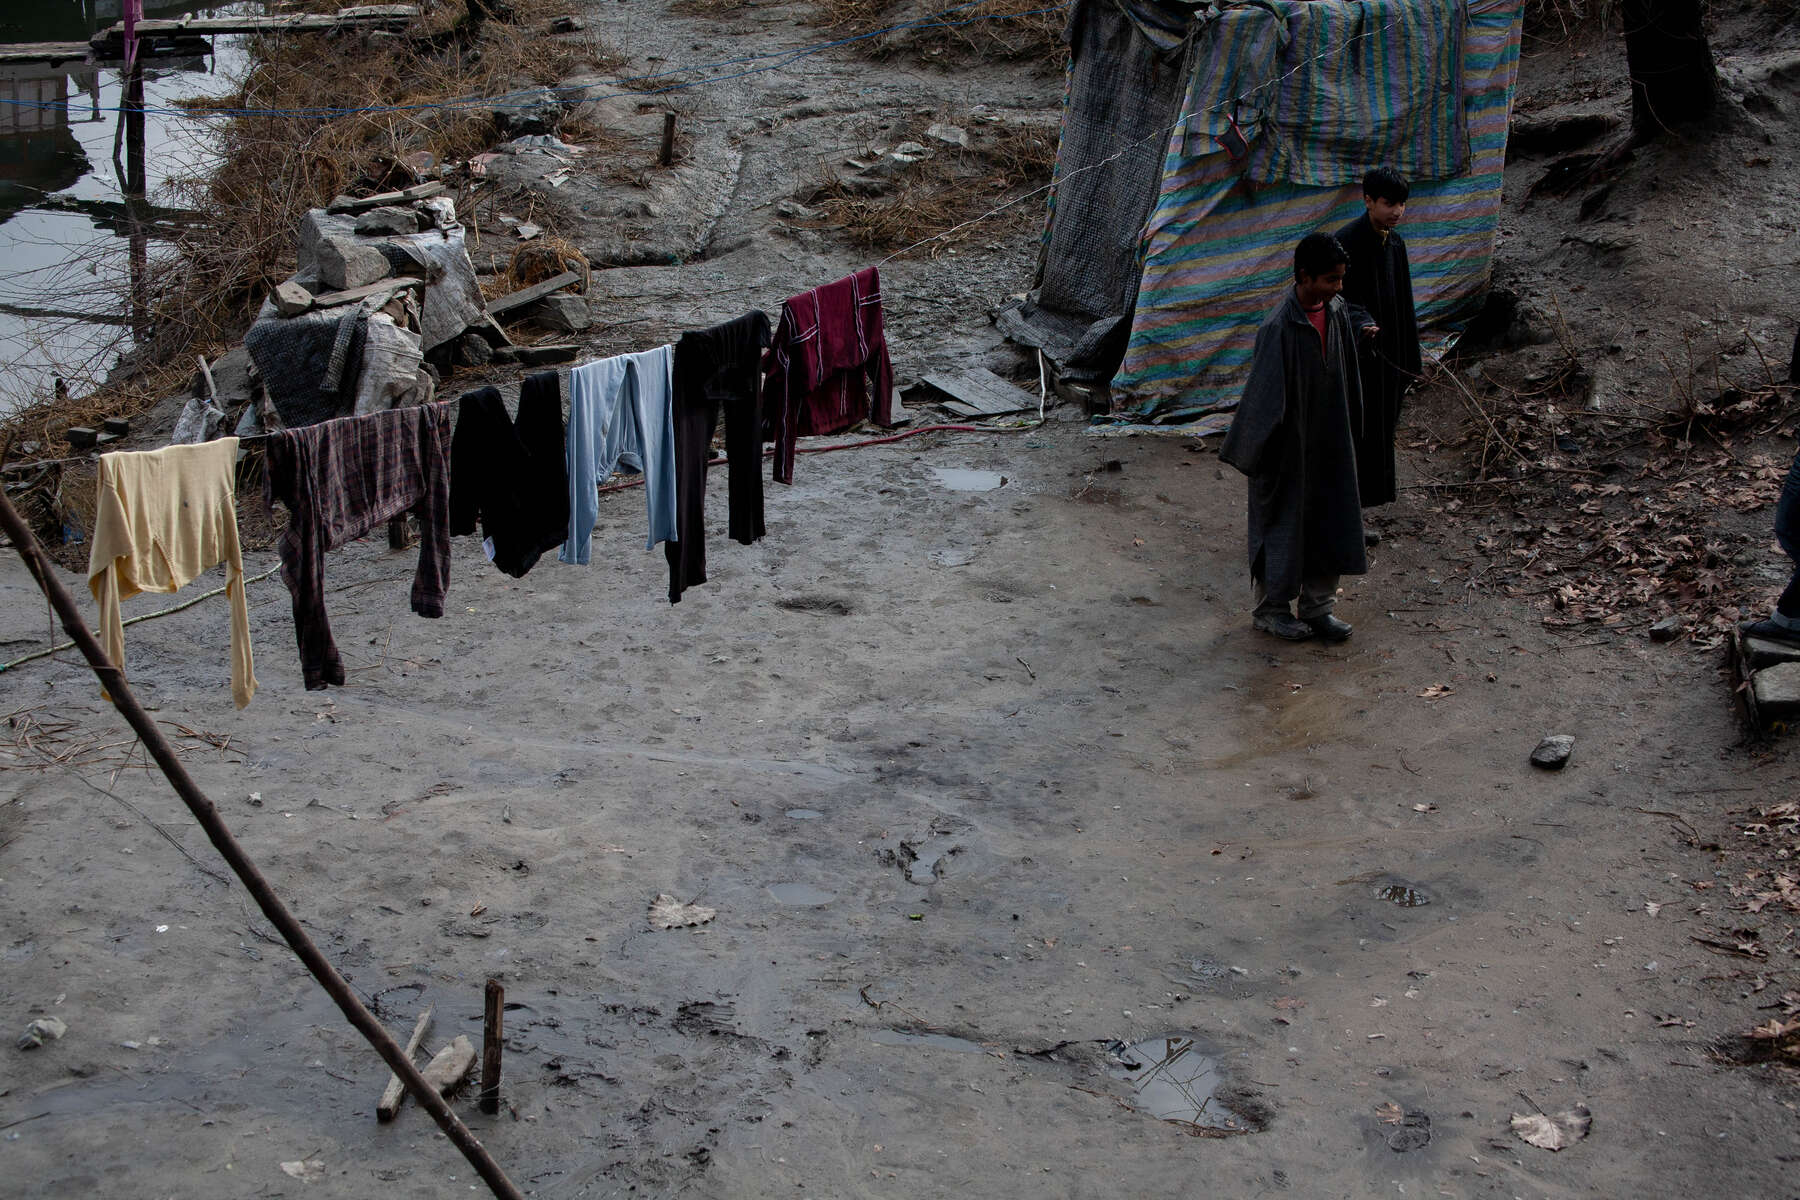 Clothes dry over mud pools. The weight of winter looms in the stillness of days. Kashmir's summer capitol waits for the seasons to pass, while business stalls in it's inability to thrive.